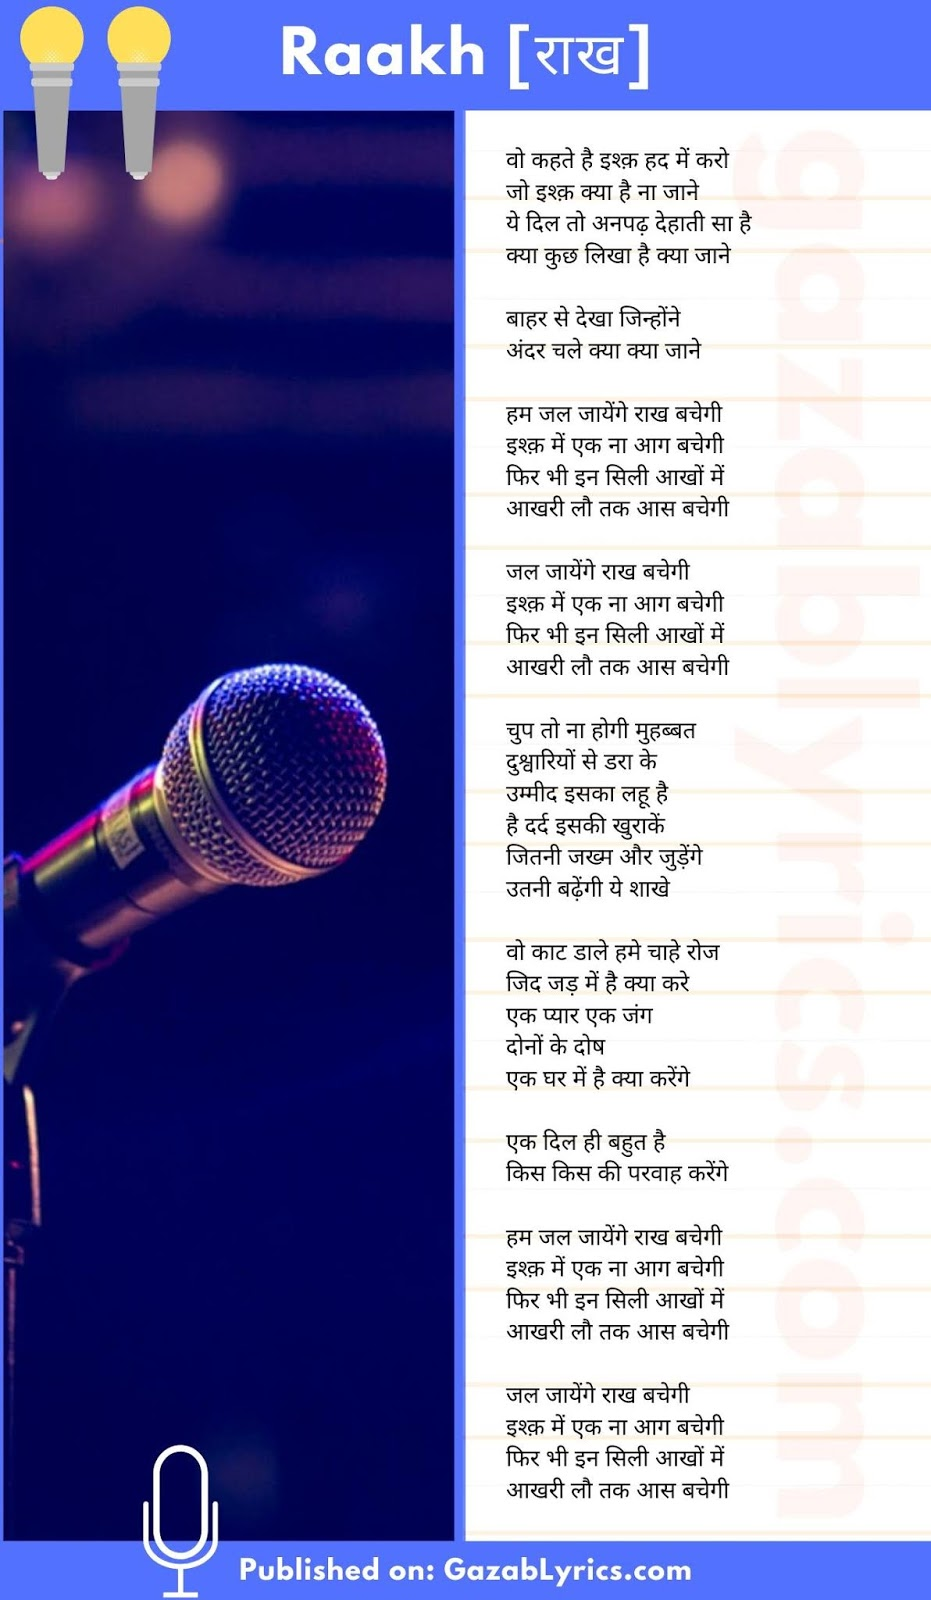 Raakh song image lyrics